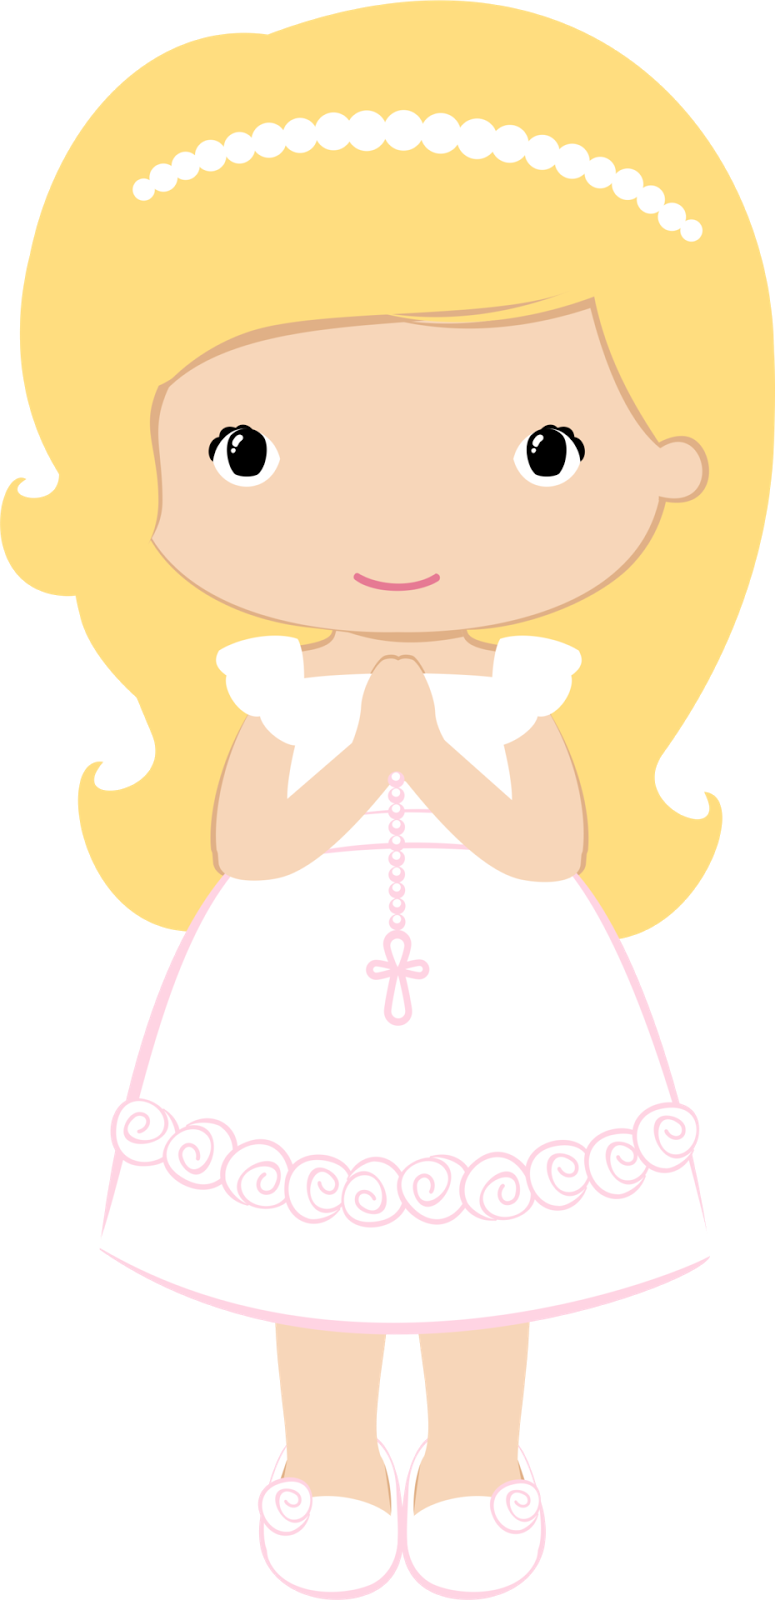 775x1600 Girls In Their First Communion Clip Art. Oh My First Communion!